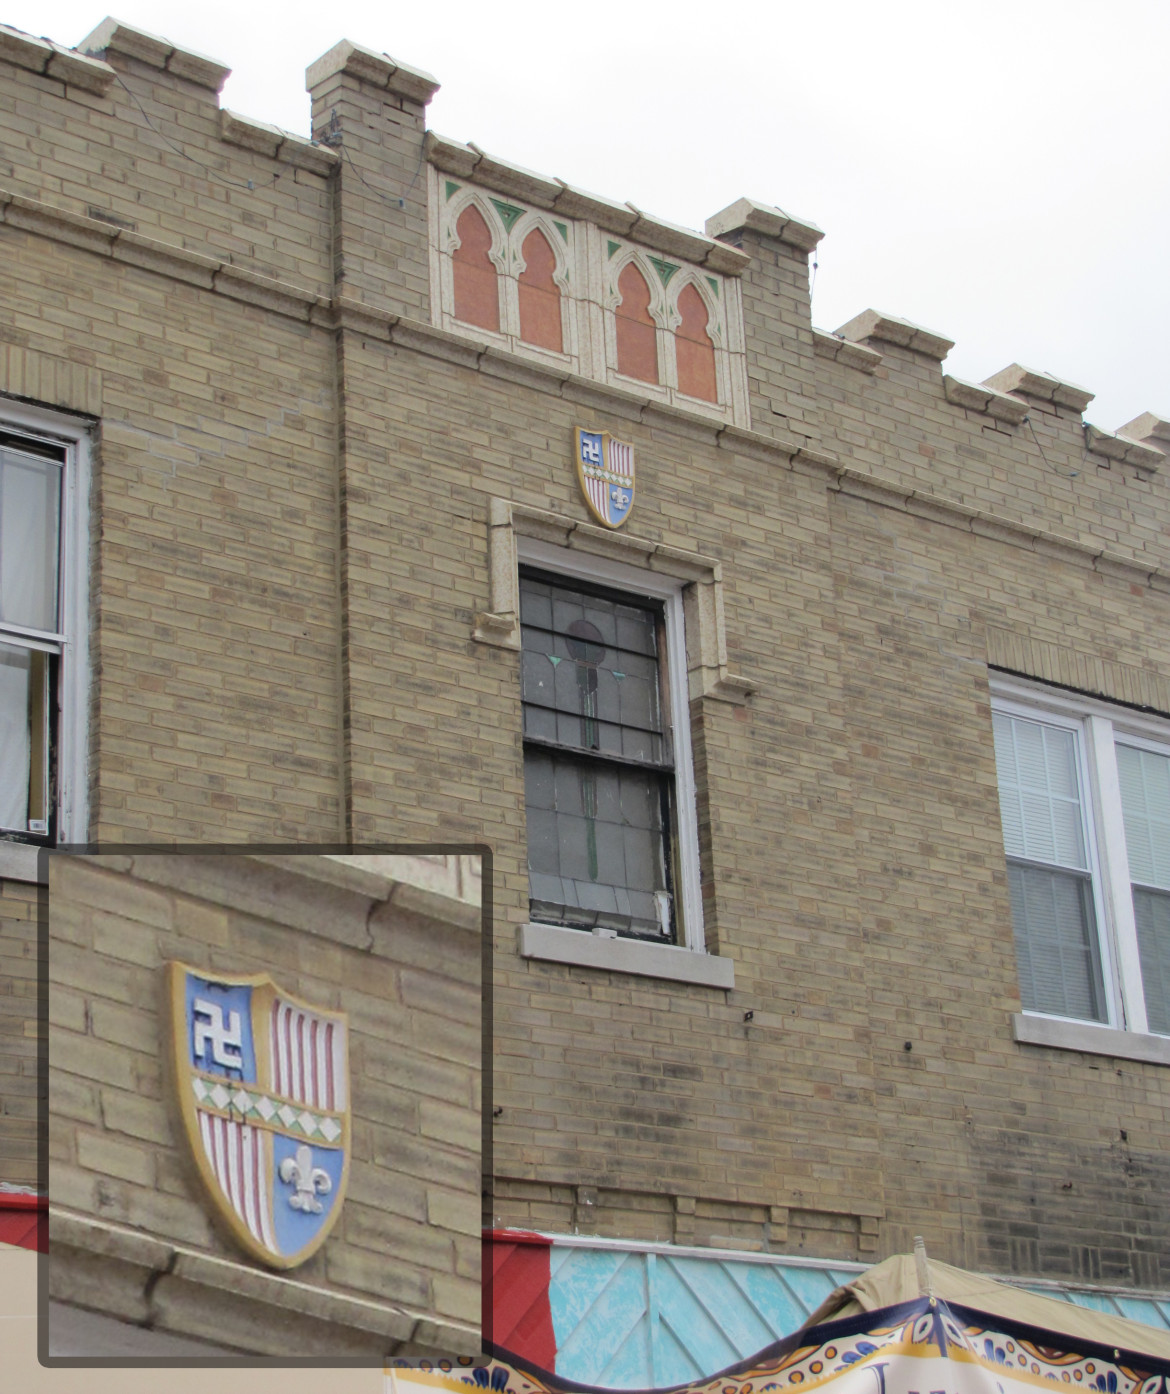 While not in Maplewood, this building on Cherokee in St. Louis has a terra cotta shield that contains a svastika. Notice that it is flipped in the oposite direction of the others. Photo by the author.